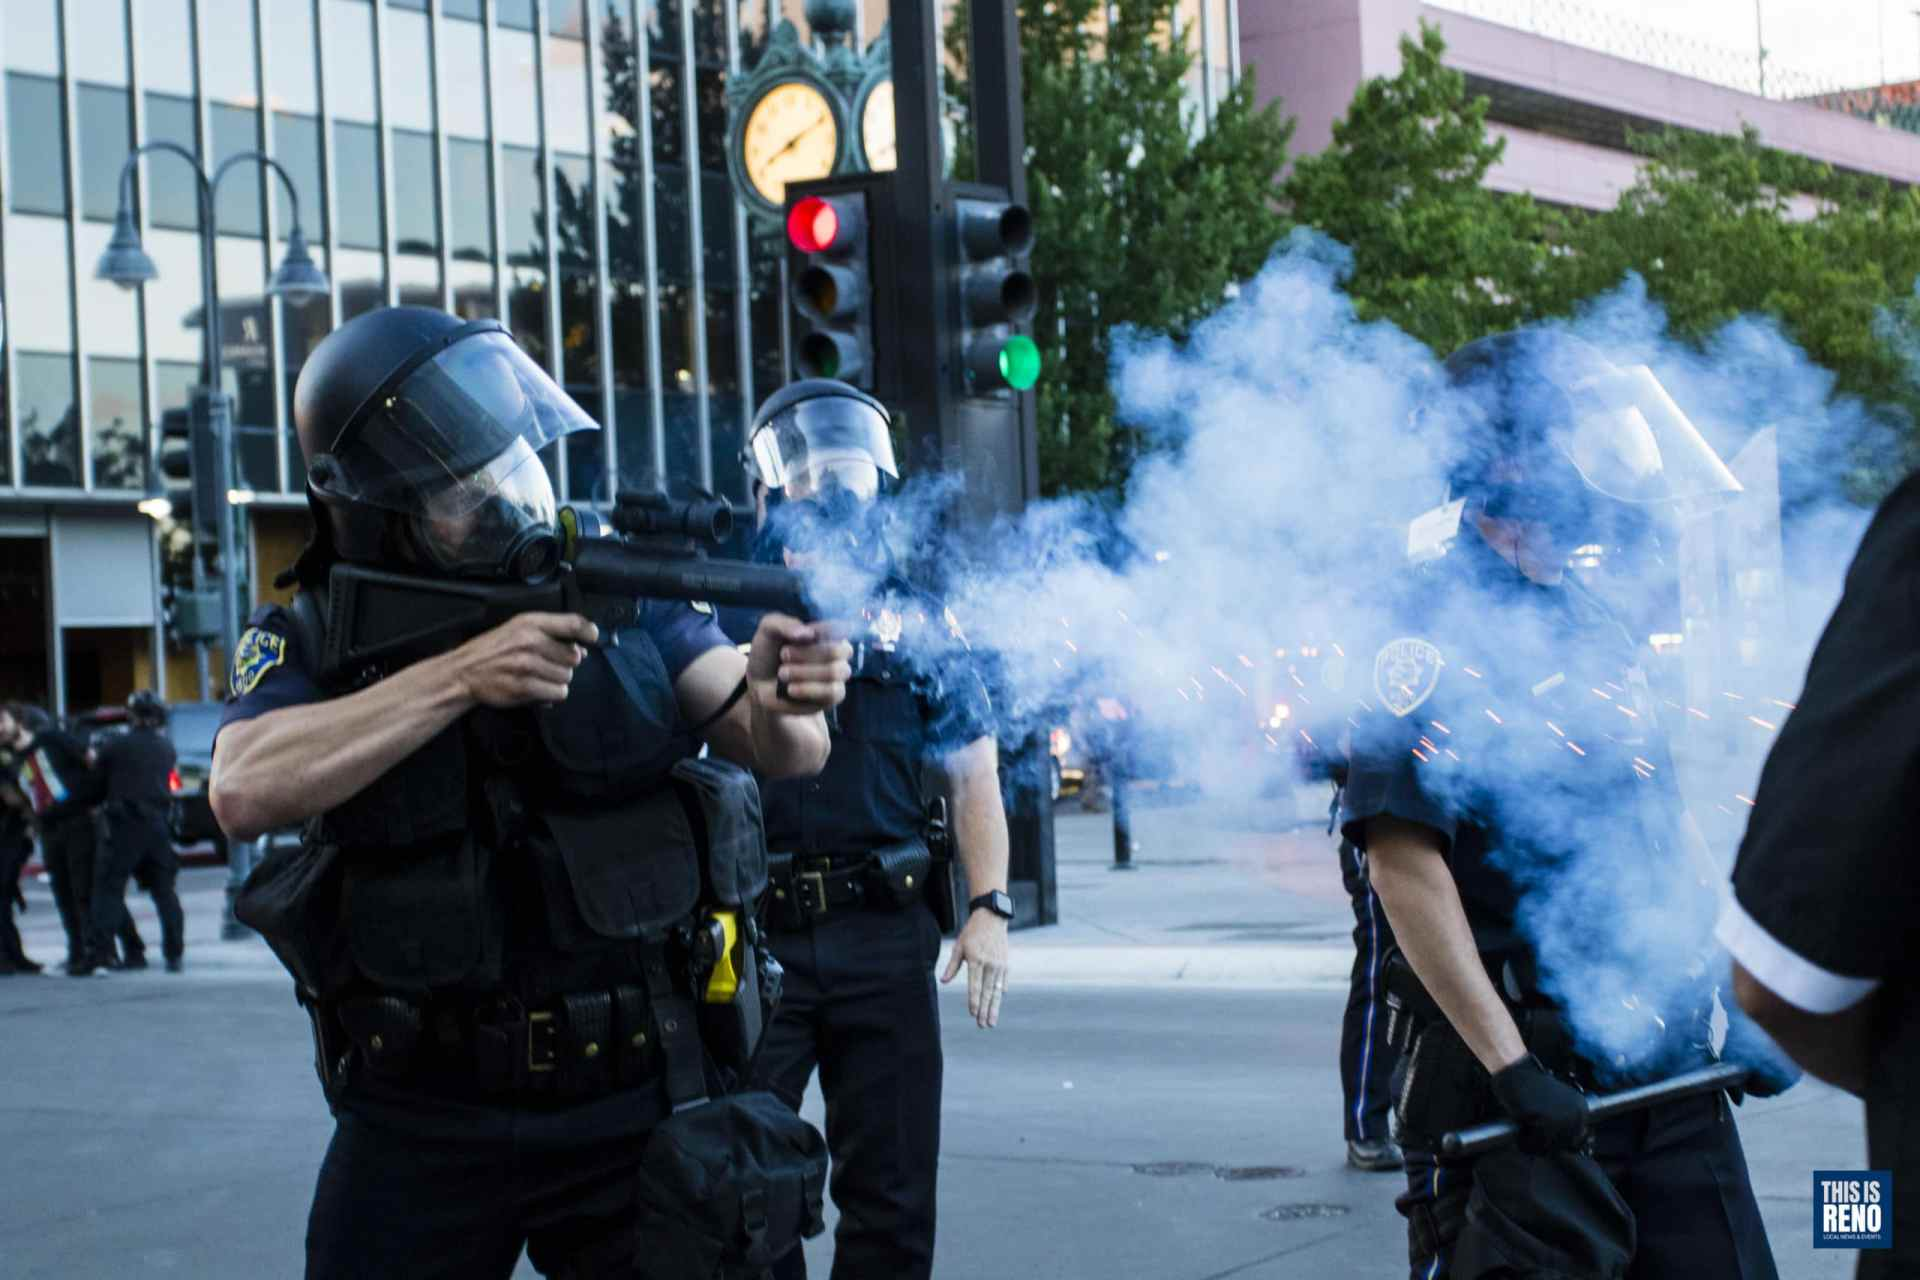 Reno Police officers shoot rubber bullets at rioters on May 30, 2020 in Reno, Nev.